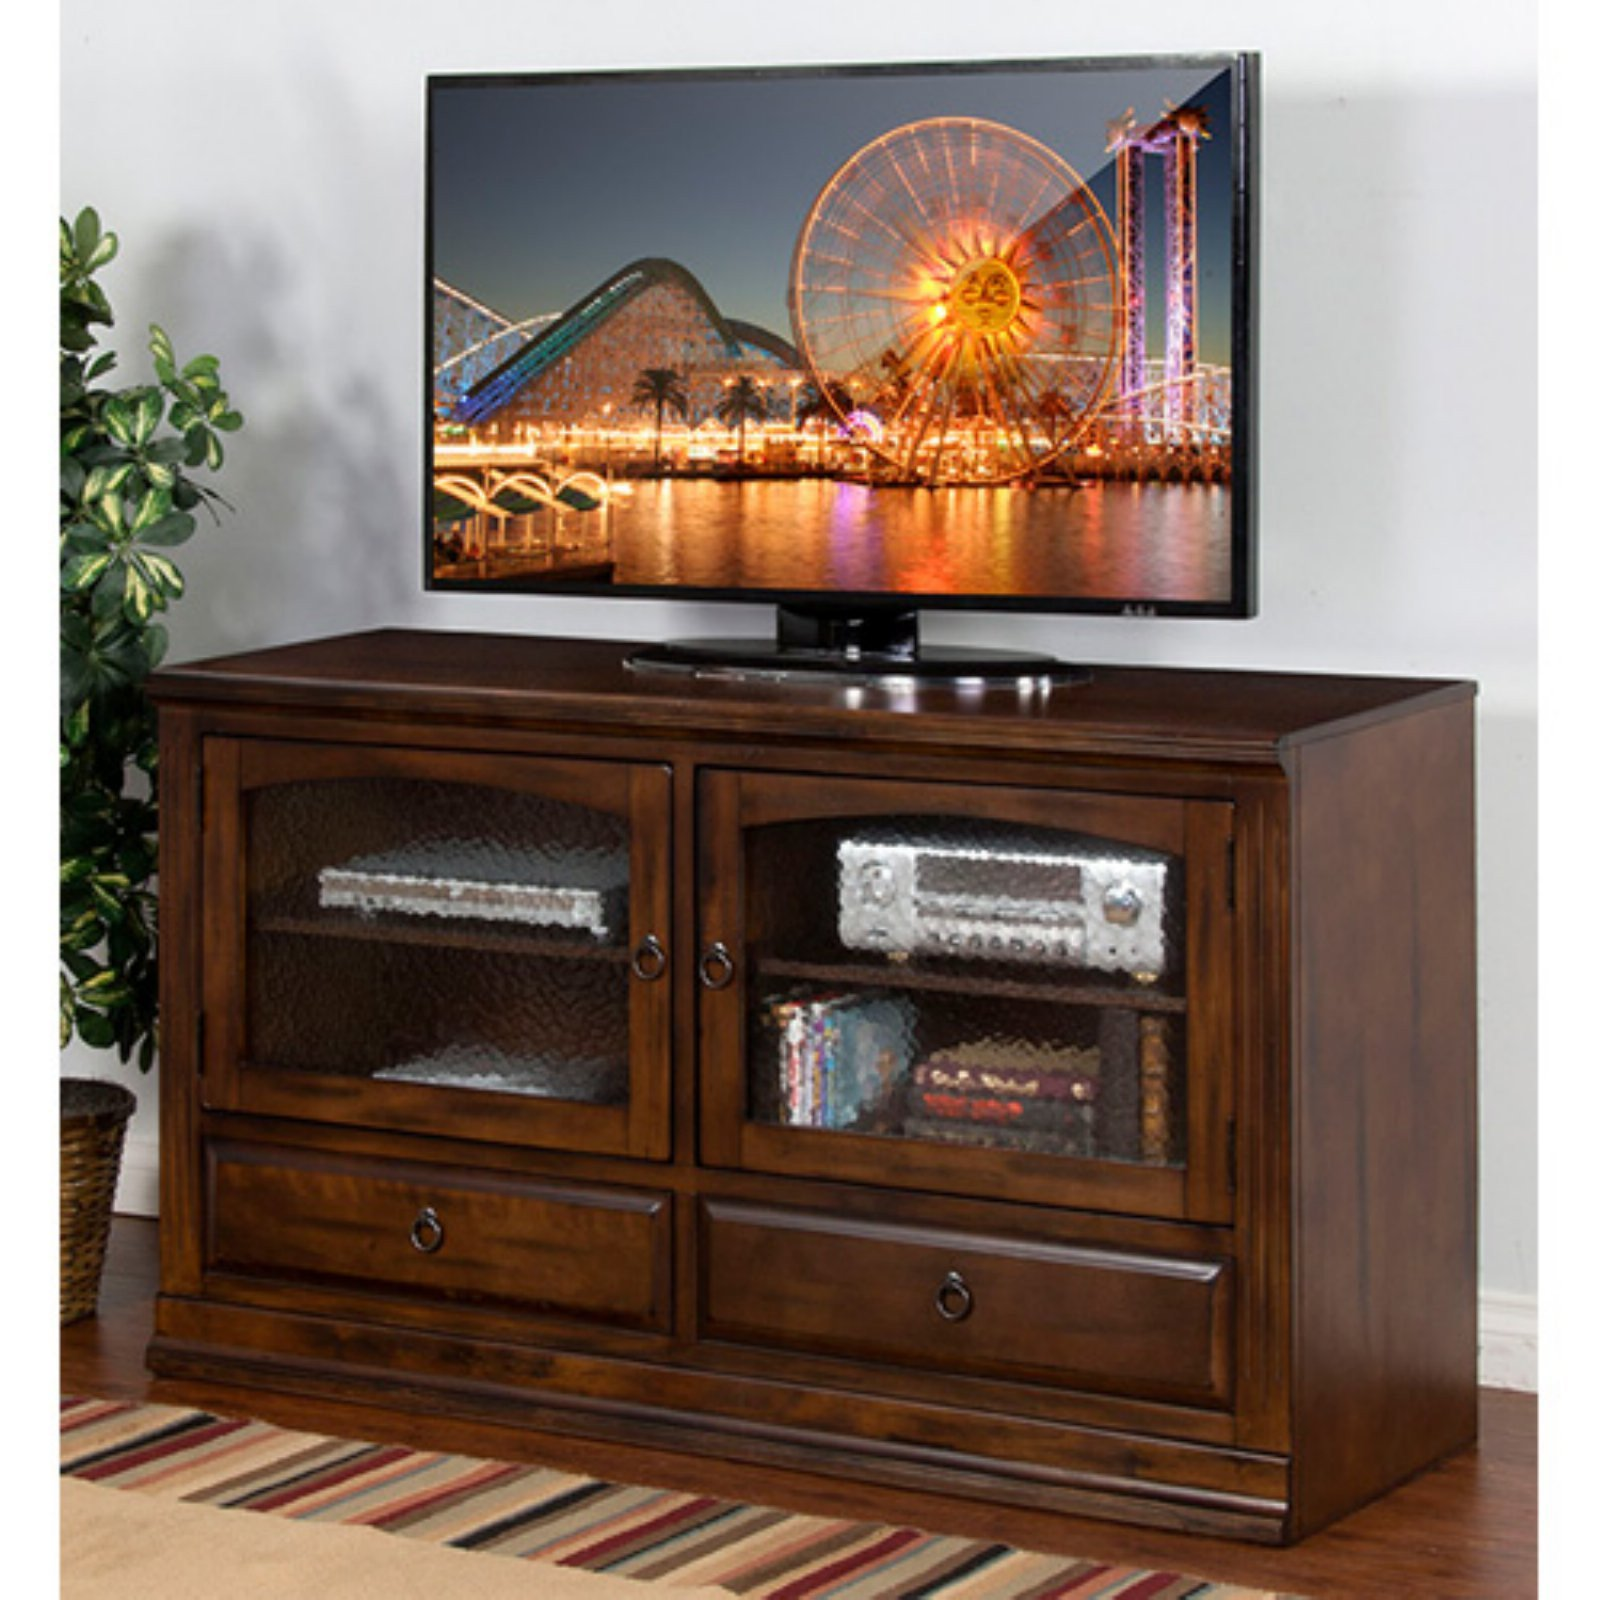 Wal Mart Bedroom Furniture Beautiful Sunny Designs Santa Fe 63 In Entertainment Center Walmart